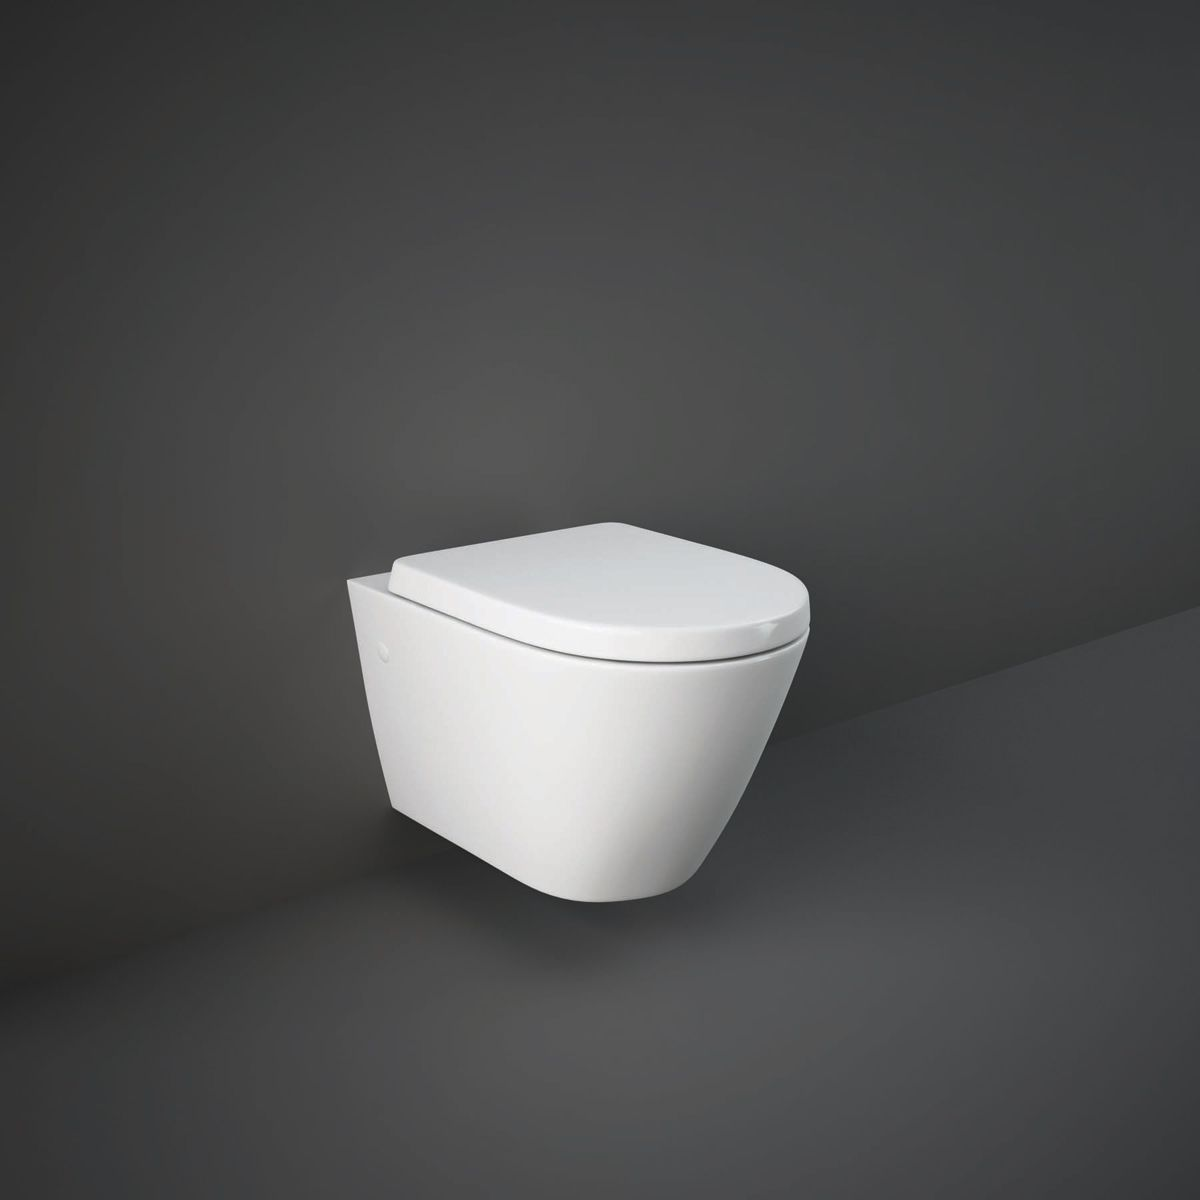 RAK Resort Wall Hung Hidden Fixation Toilet with Wrap Over Soft Close Seat